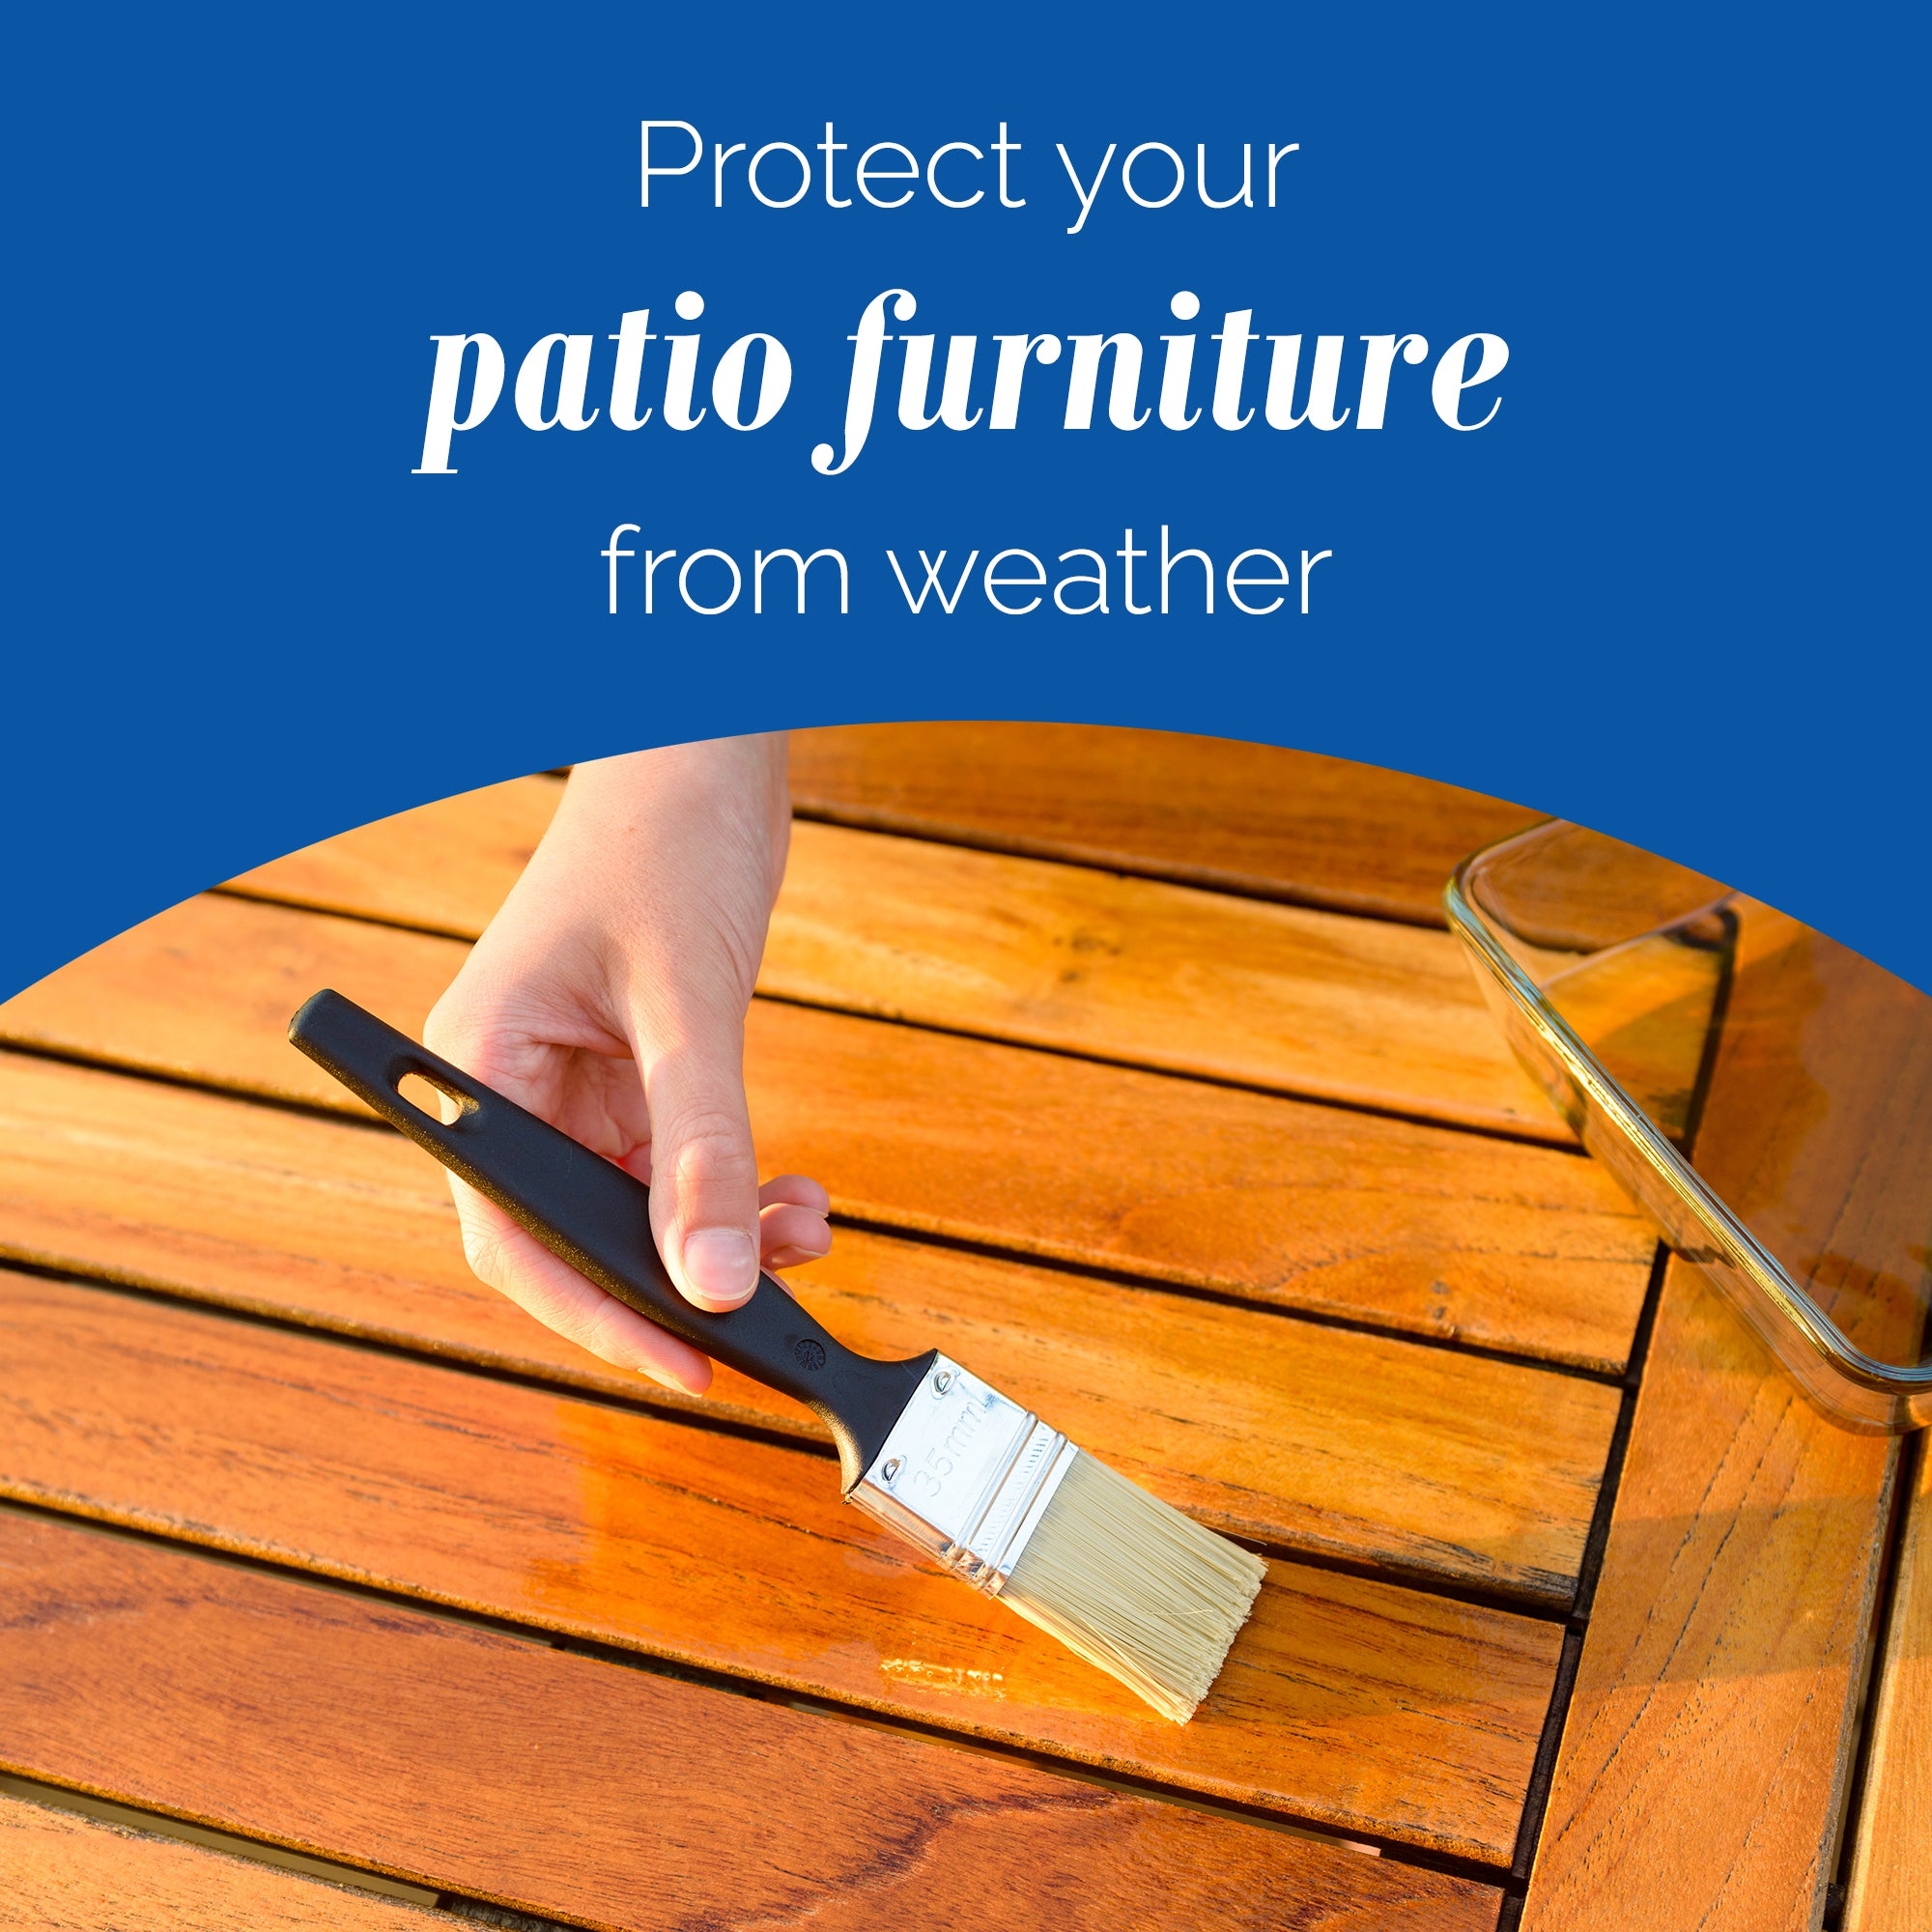 Top 3 Tips To Protect Your Wooden Patio Furniture